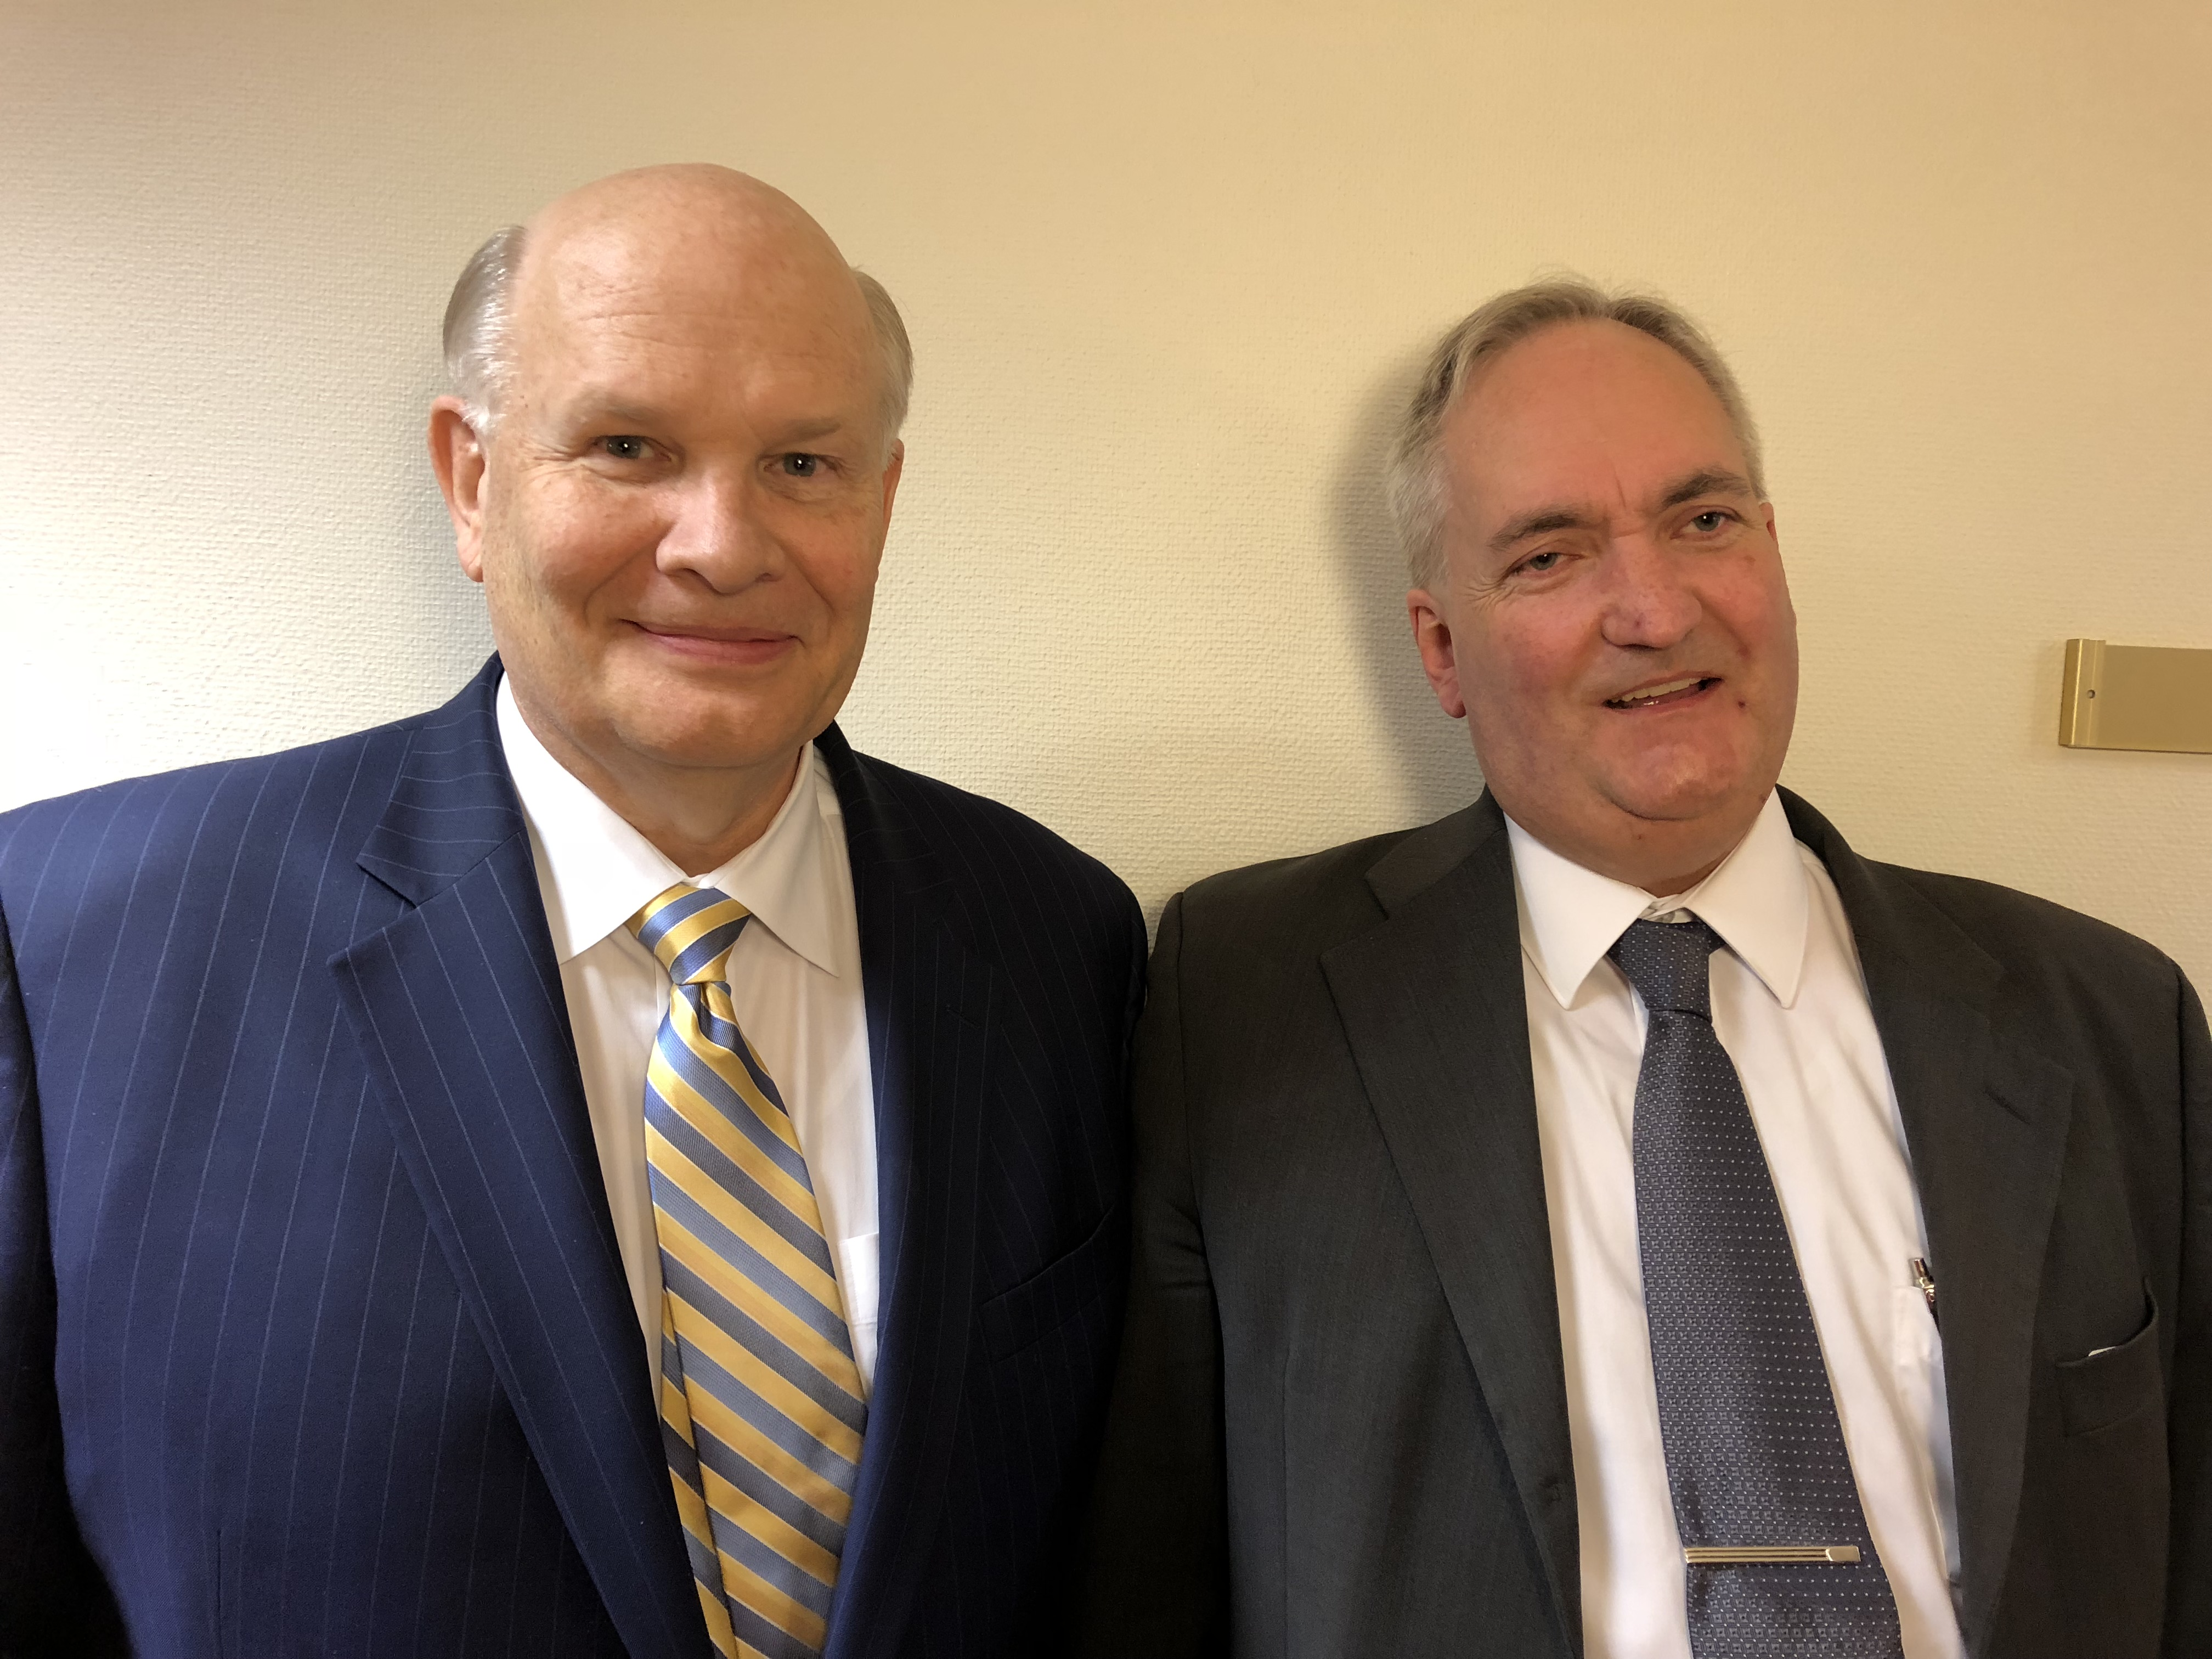 Elder Dale G. Renlund of the Quorum of the Twelve Apostles stands with Pablo Bensige, a man Elder Renlund taught and baptized while serving as a missionary in Sweden as a young man.